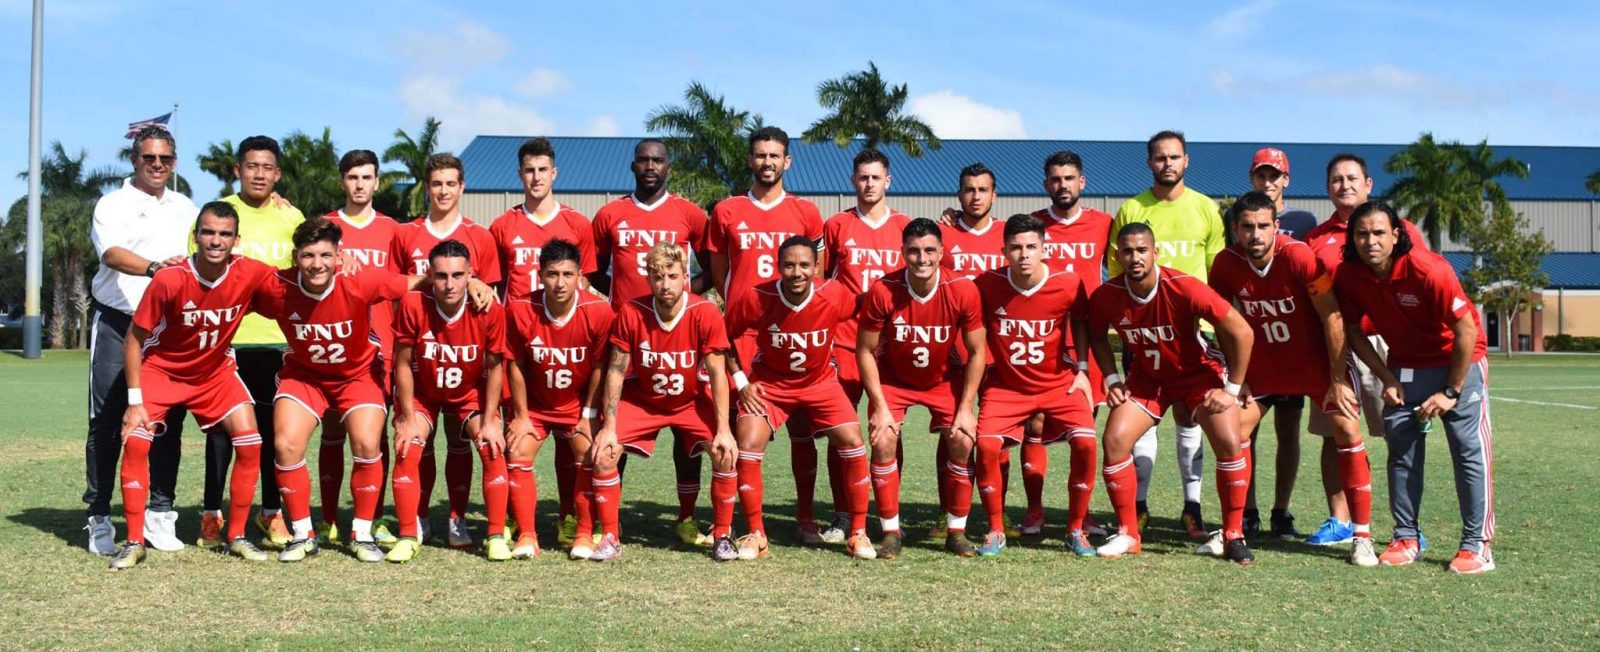 FNU Men's Soccer Team Picture